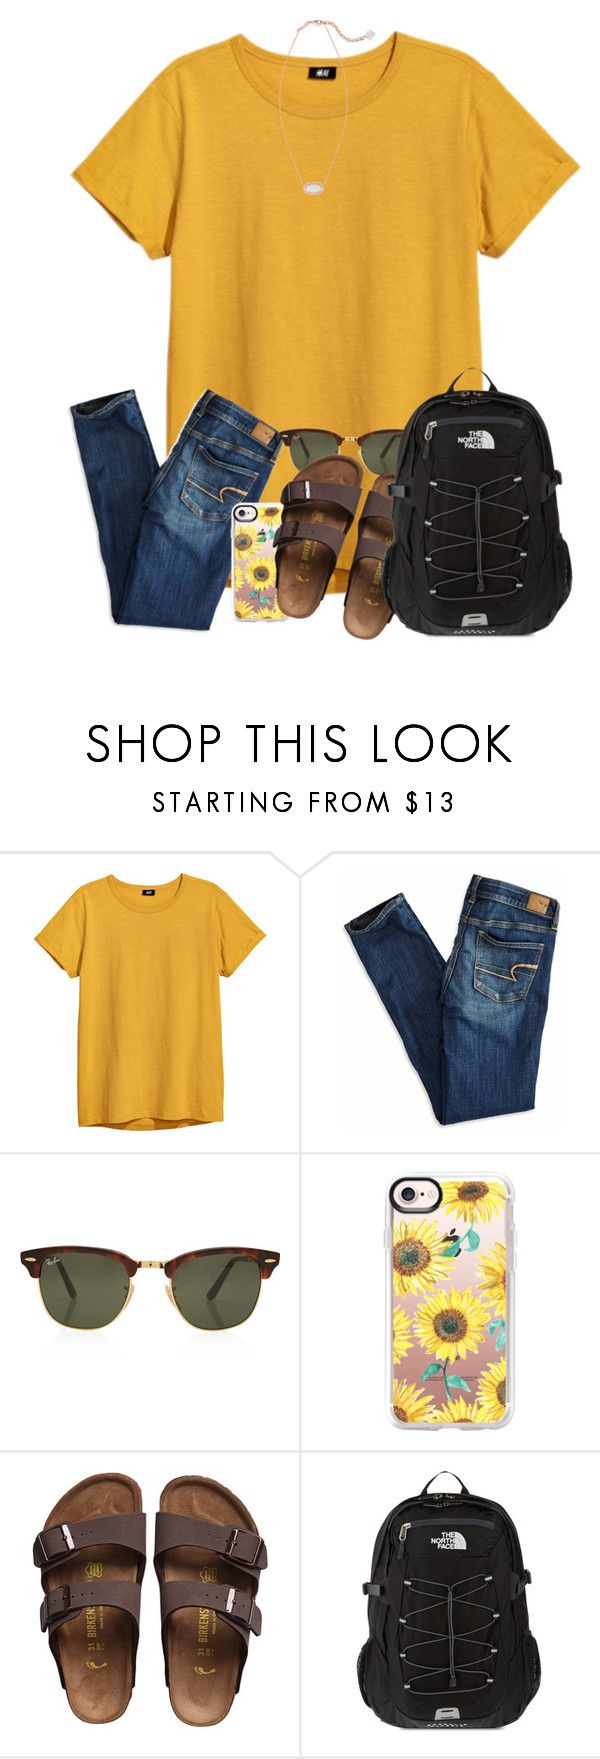 """RTD! SERIOUSLY!"" by ellisonharris ❤ liked on Polyvore featuring American Eagle Outfitters, Rayban, Casetify, Birkenstock, The North Face and Kendra Scott"